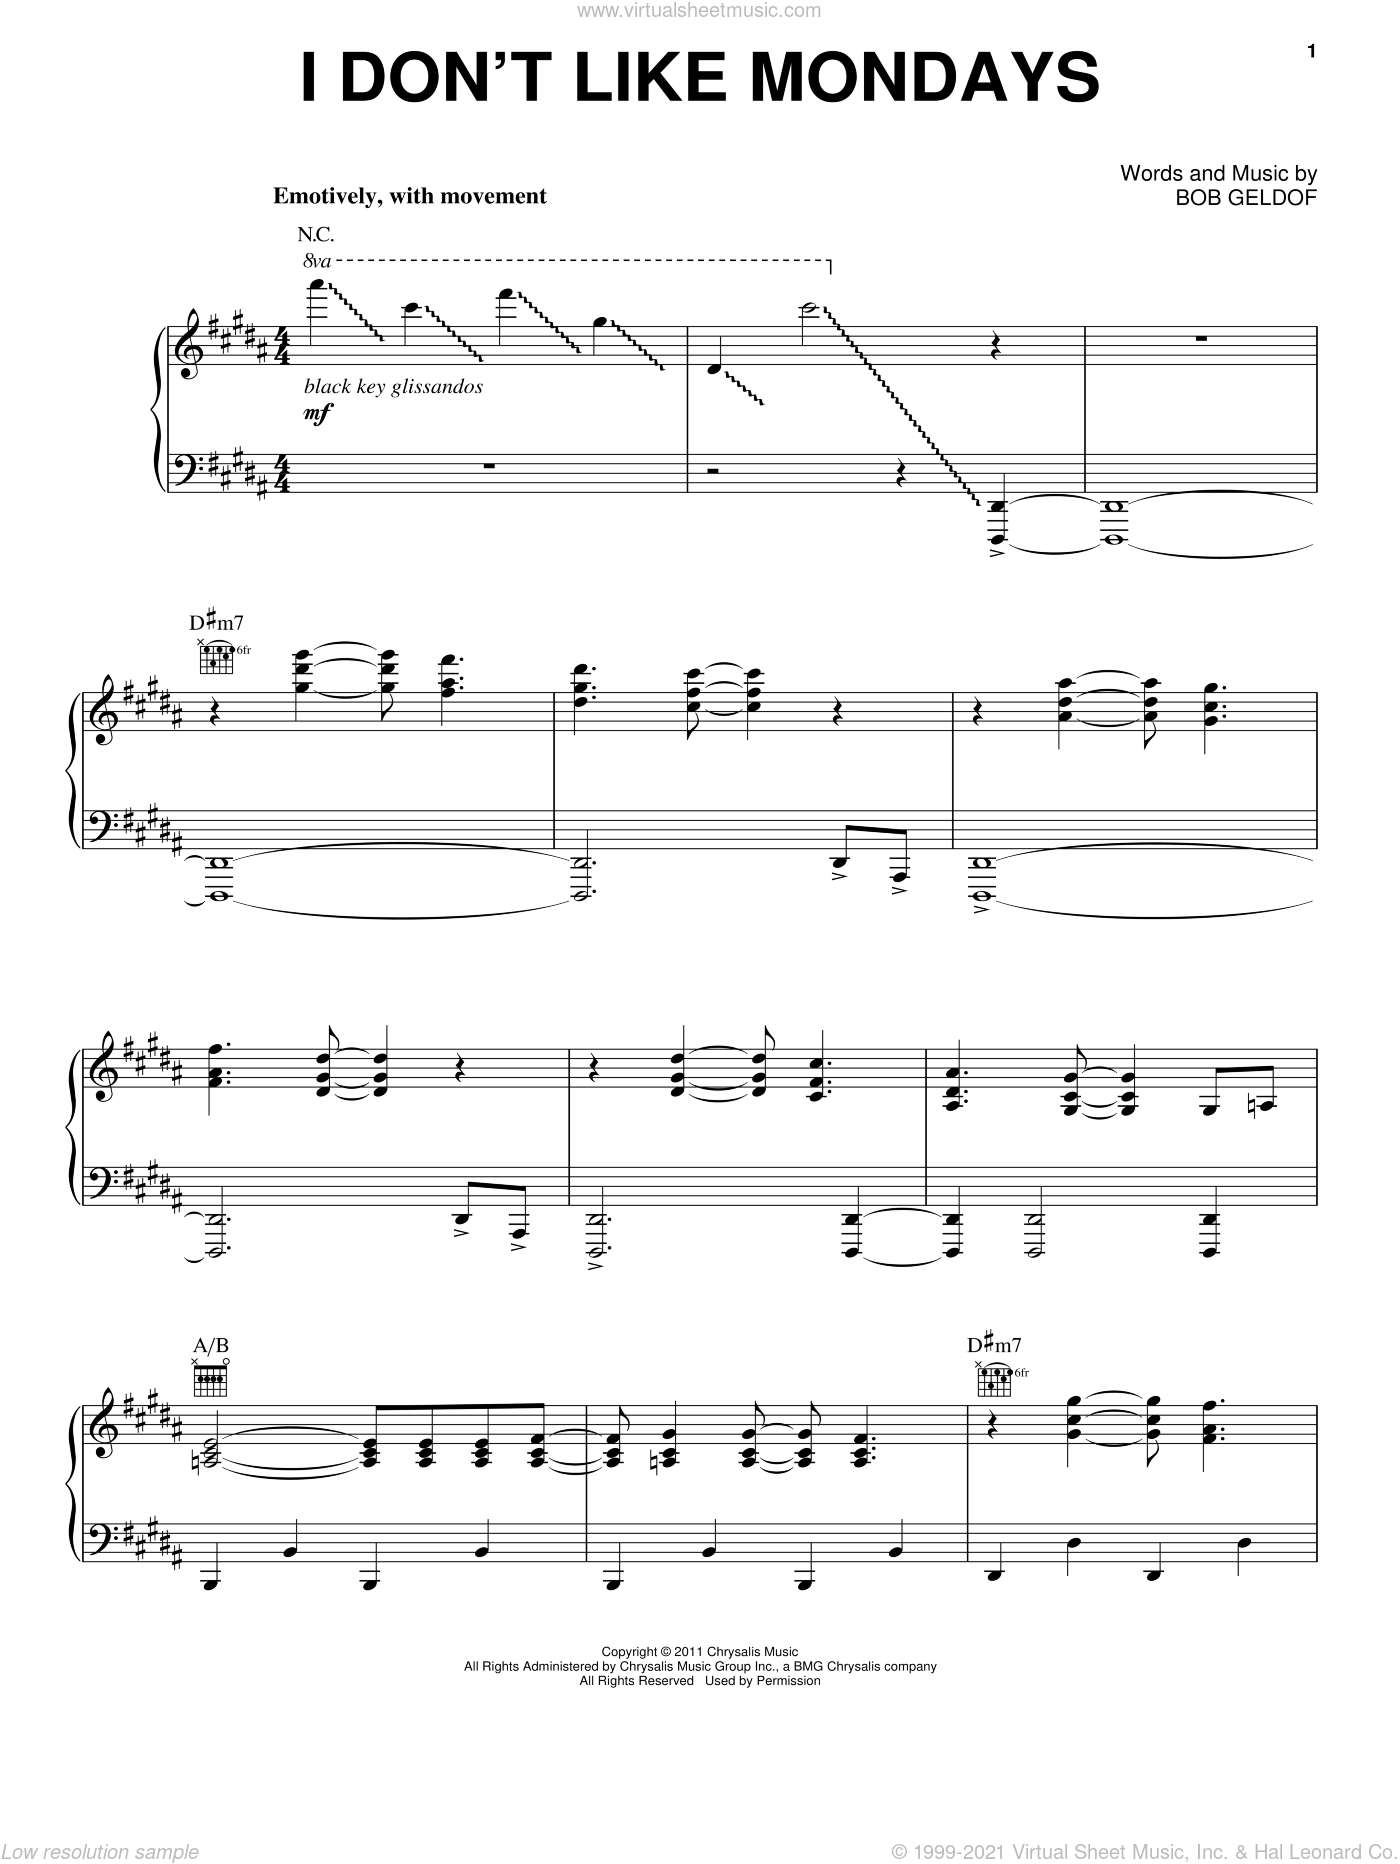 I Don't Like Mondays sheet music for voice, piano or guitar by The Boomtown Rats and Bob Geldof, intermediate